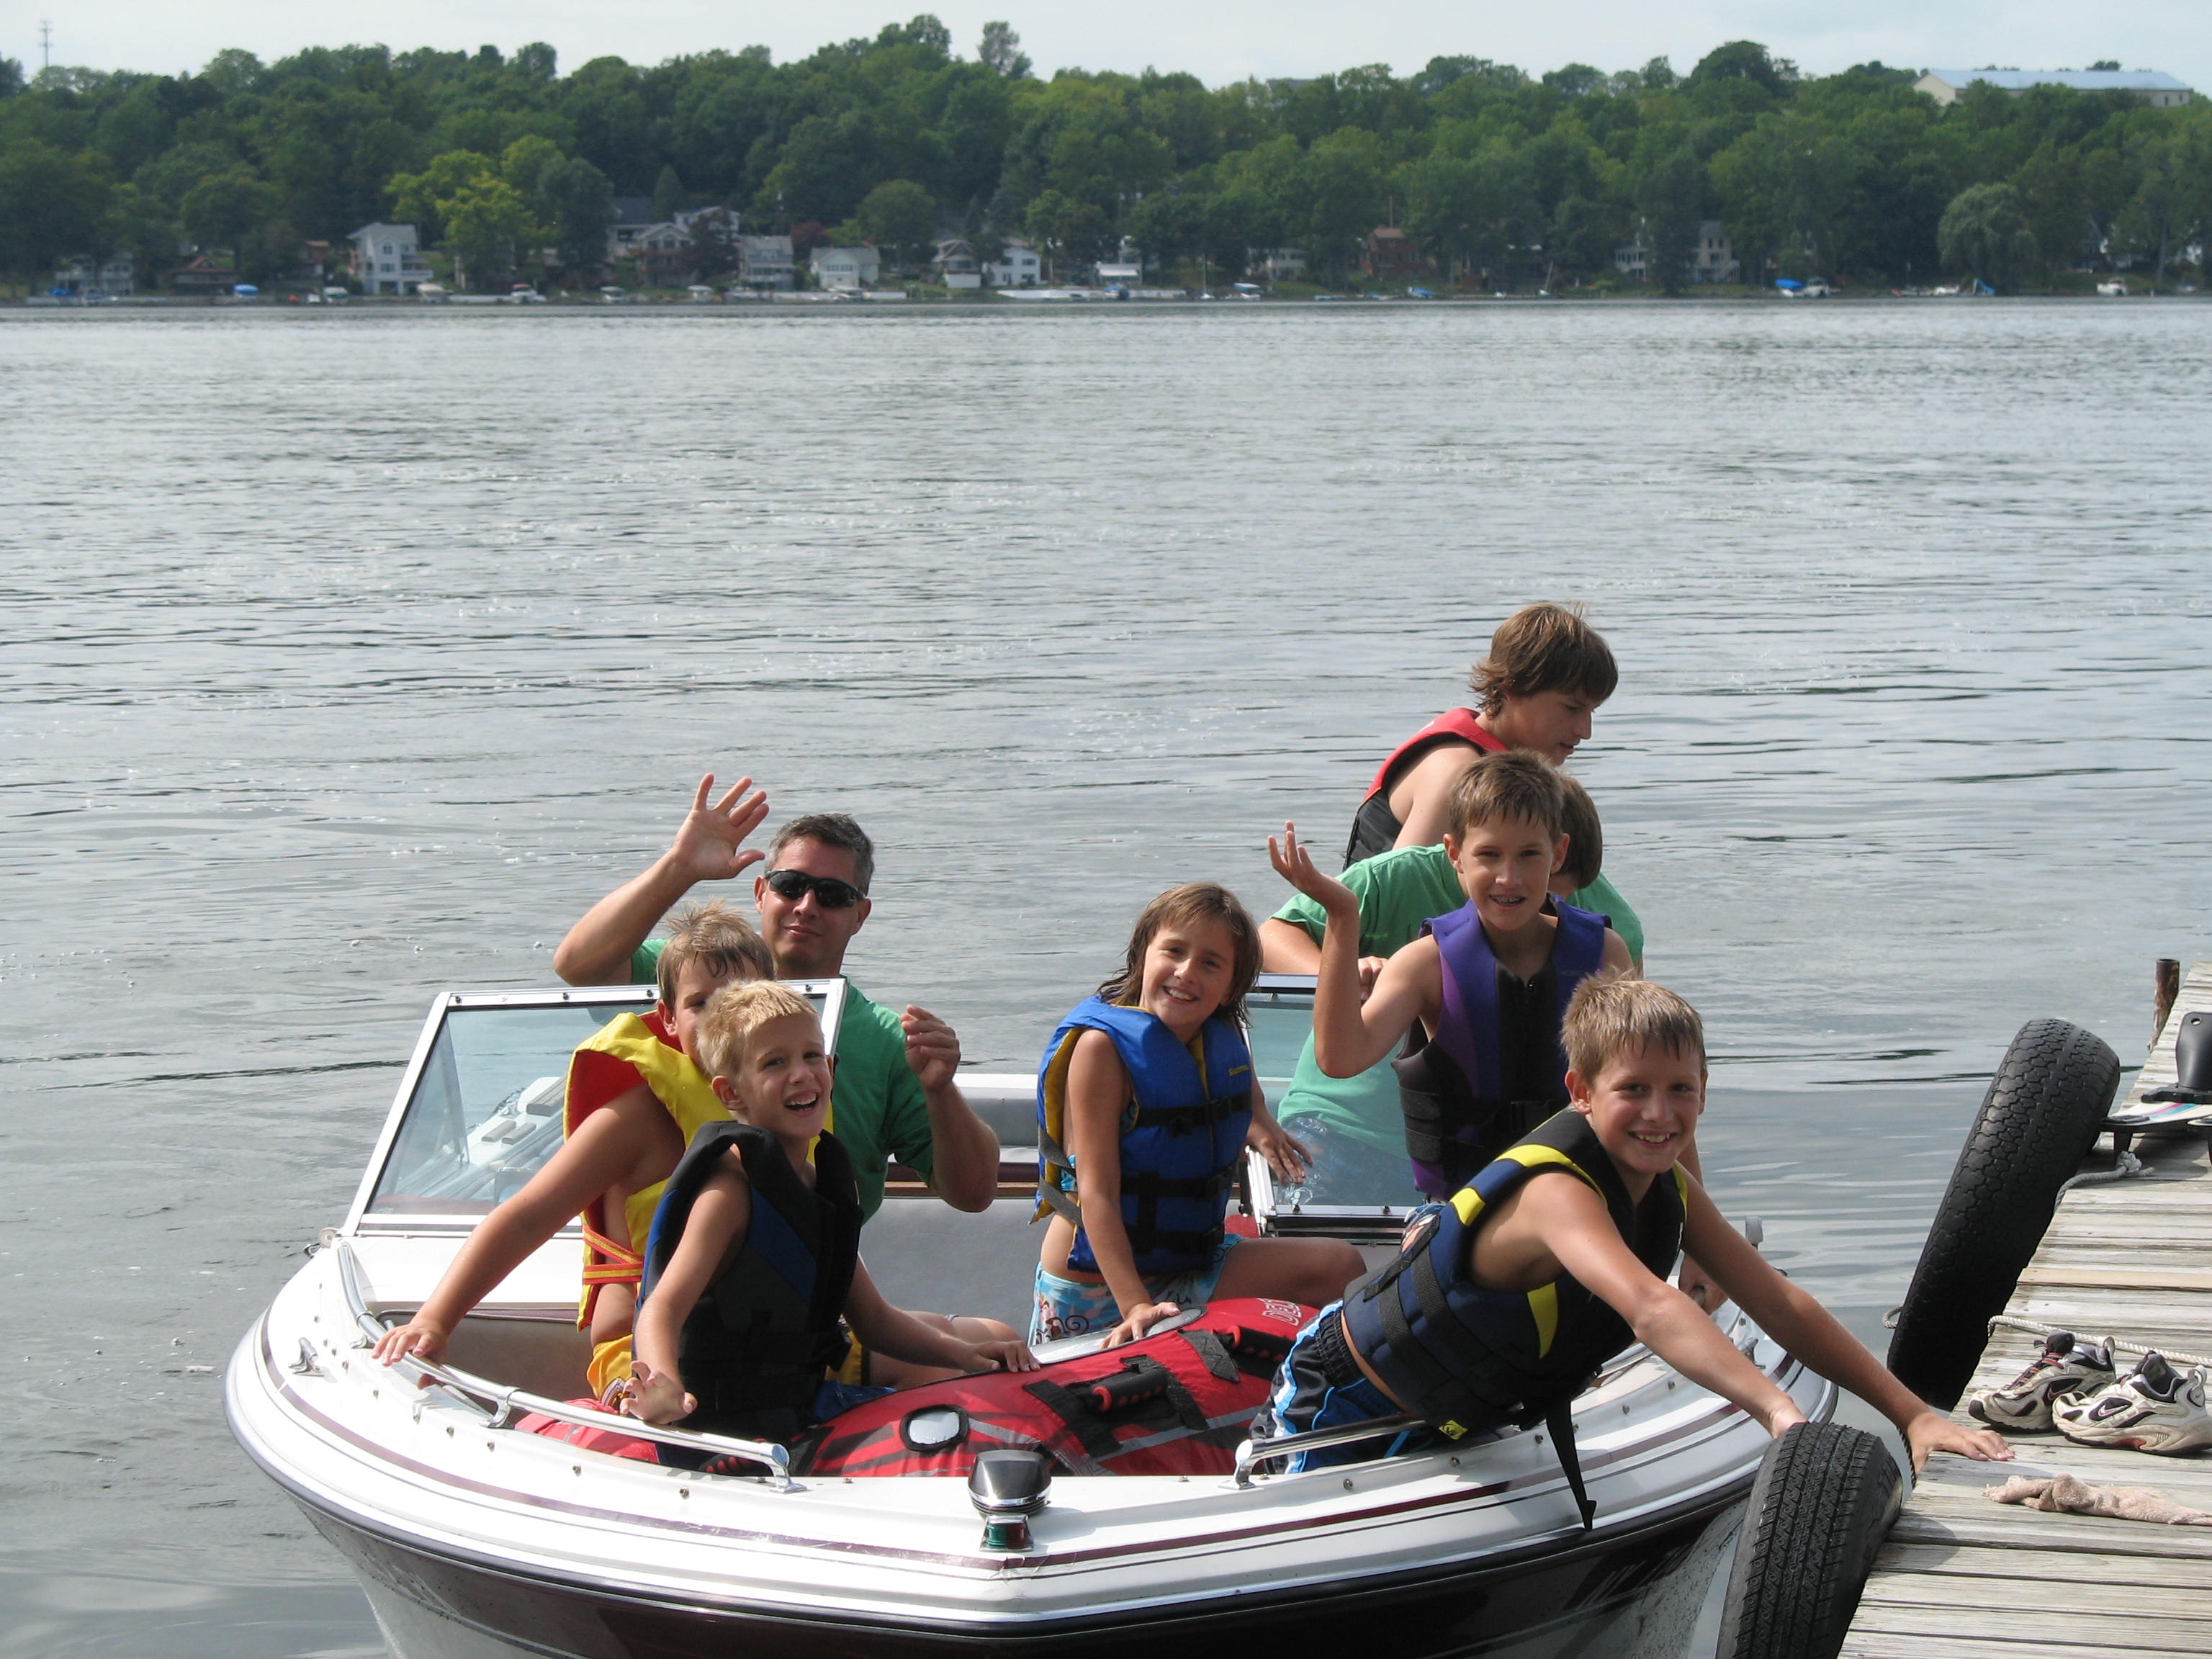 Family boating photo